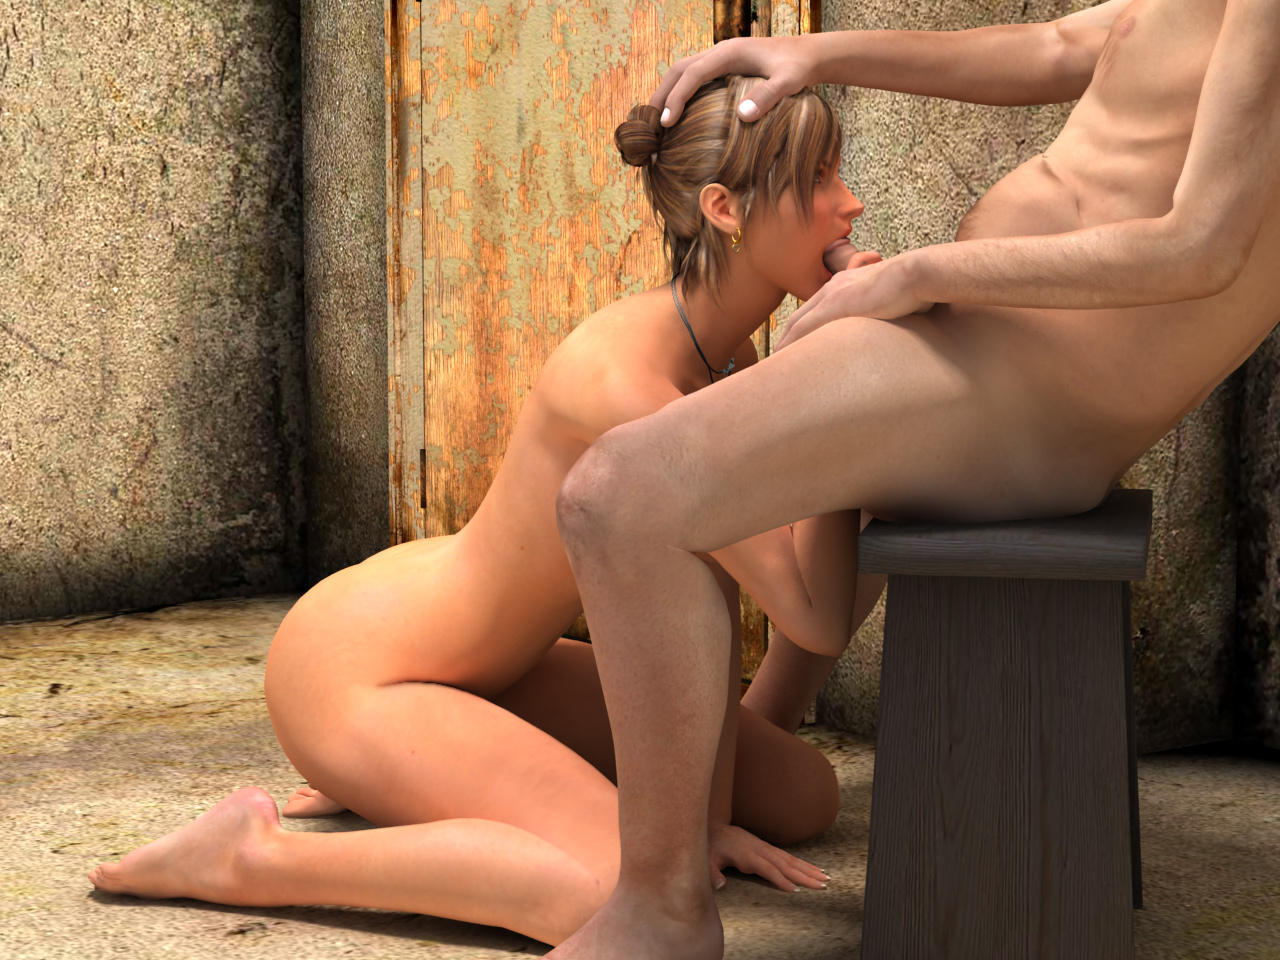 3d screenshot porno video adult photos